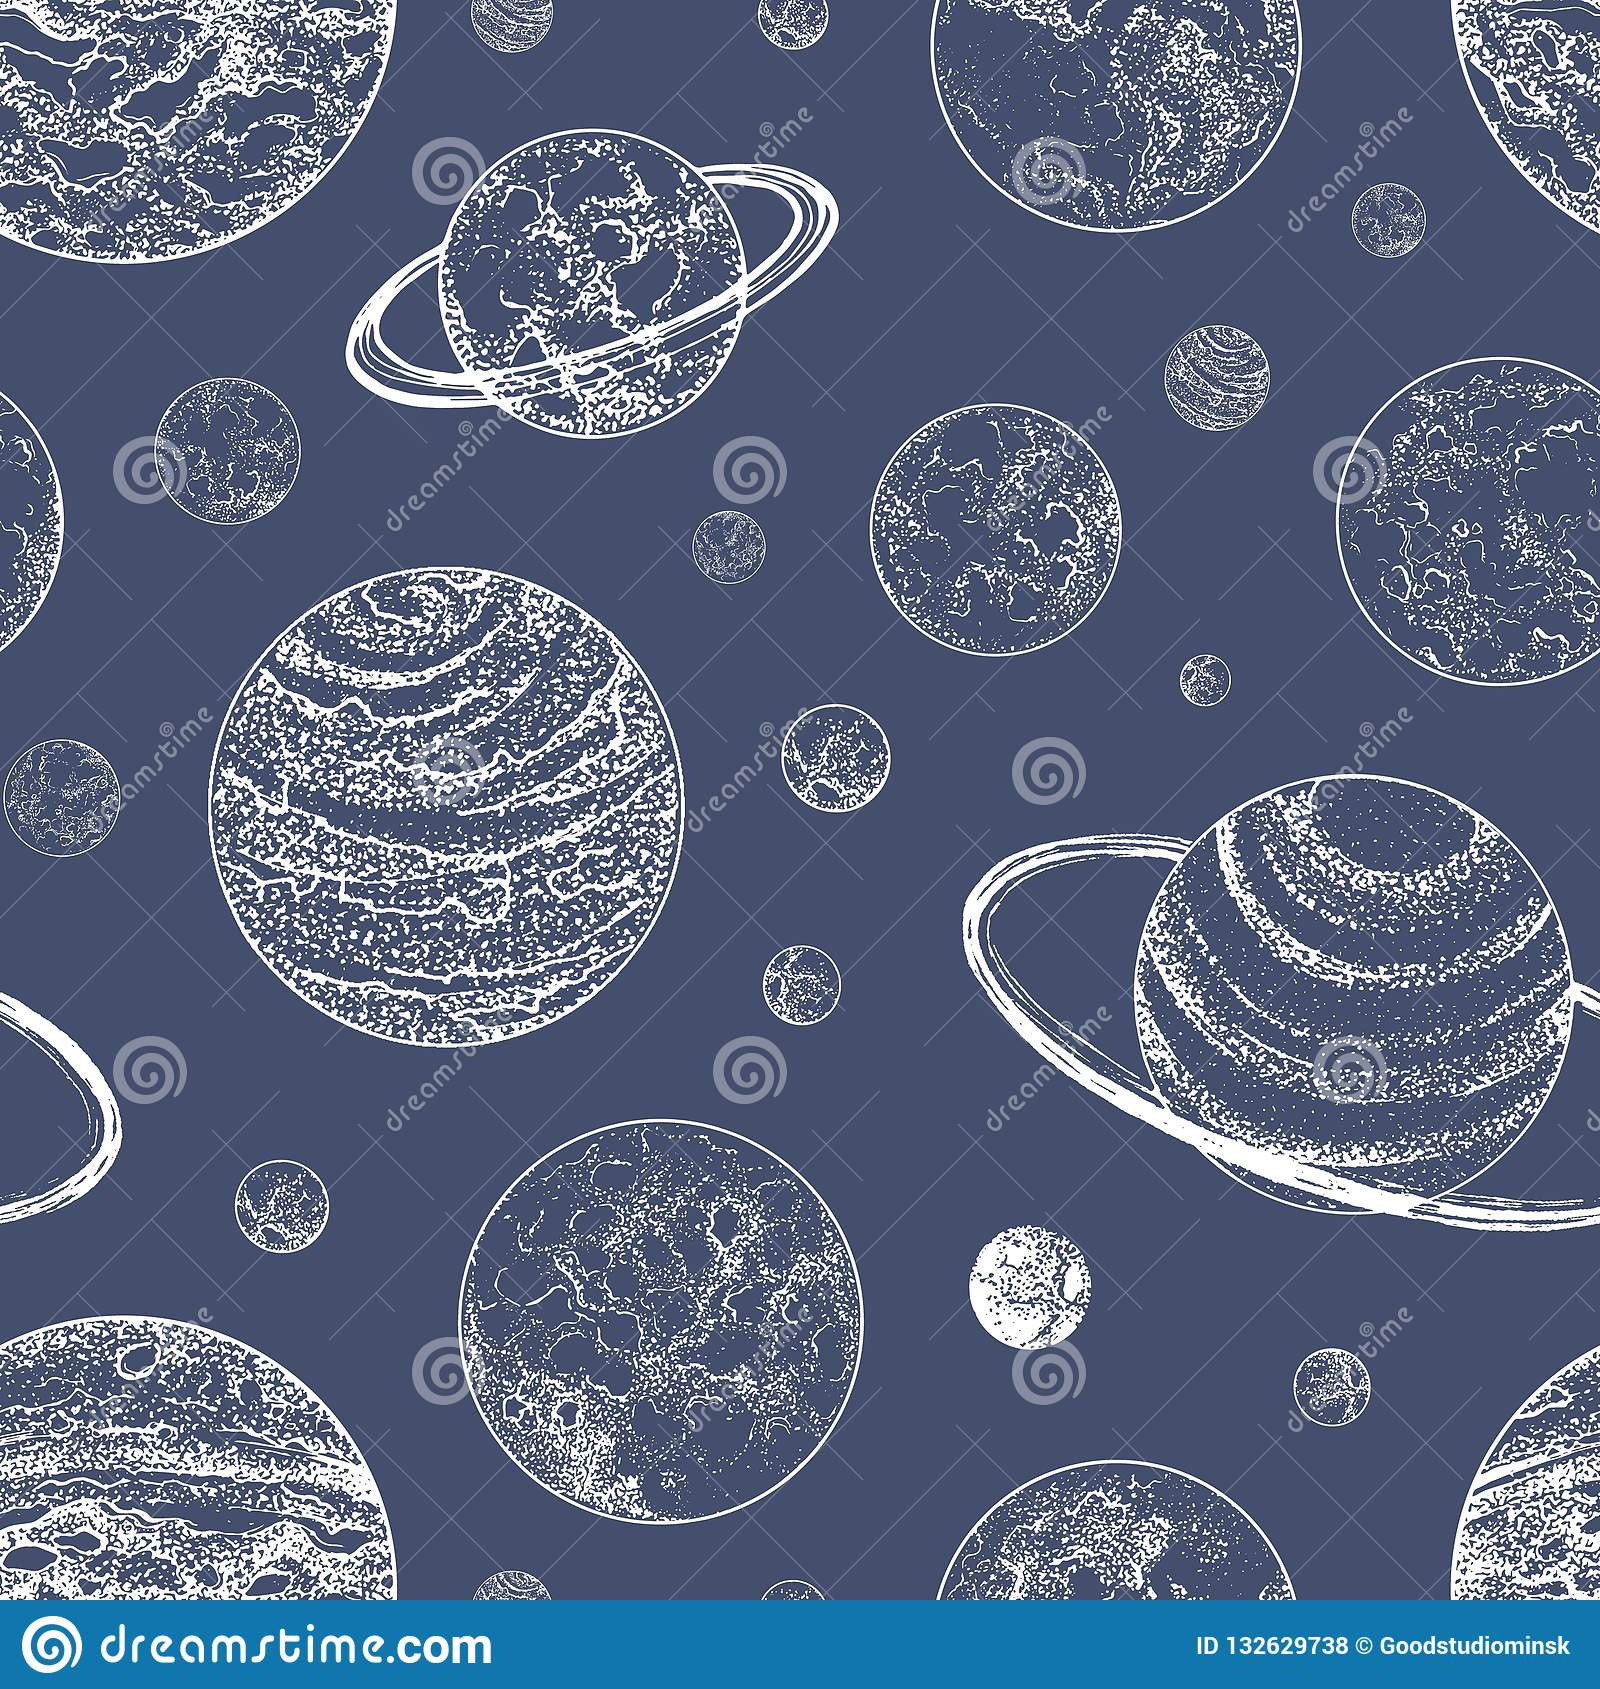 Monochrome Seamless Pattern With Planets And Other